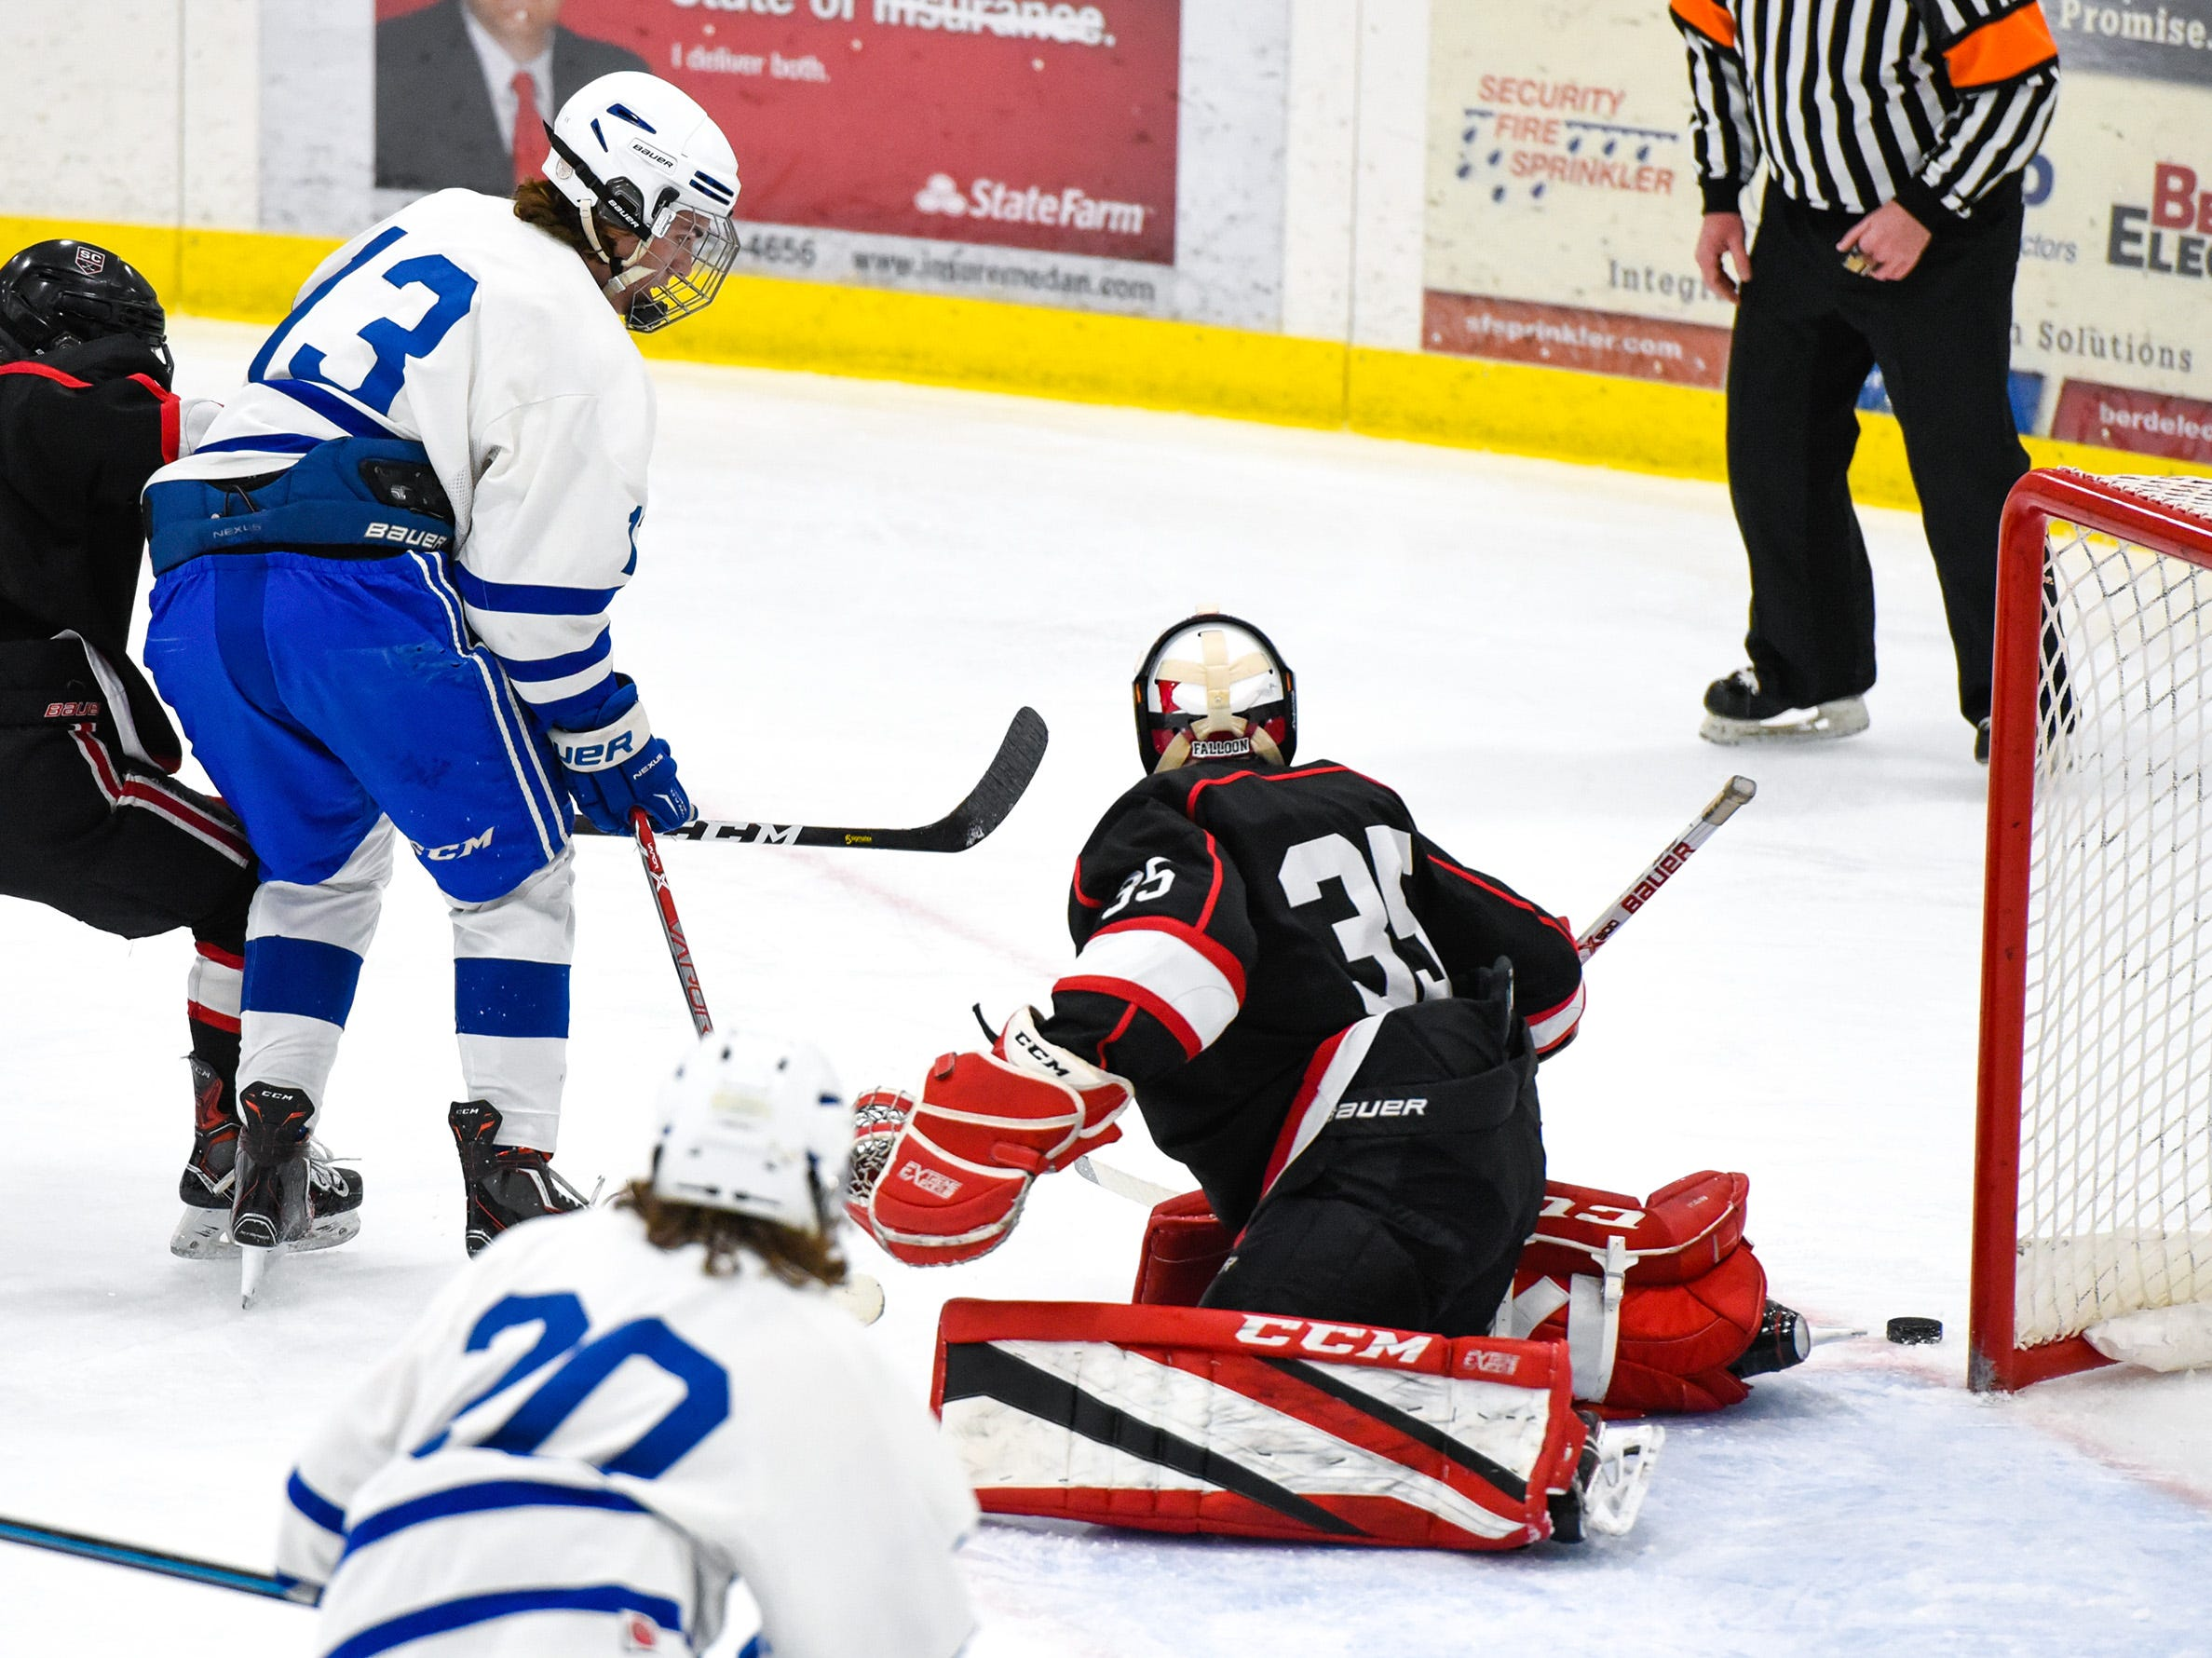 Sartell's Ryan Zulkosky, 13,  has his shot pushed wide by St. Cloud goalie Soren Falloon during the first period Tuesday, Dec. 18, at the Bernick's Arena in Sartell.